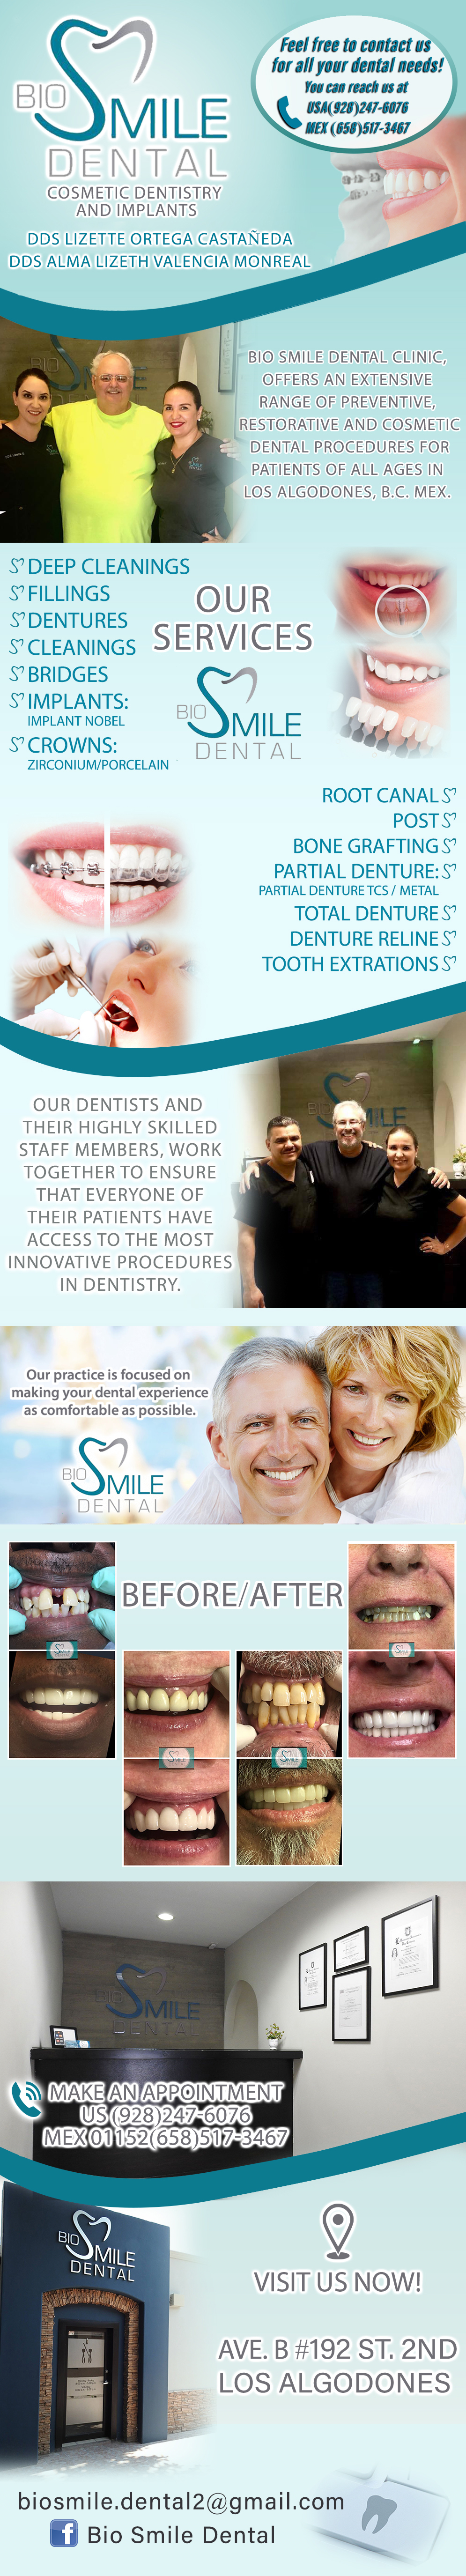 Bio Smile Dental DDS LIZETTE ORTEGA / DDS ALMA L. VALENCIA in Algodones  in Algodones  D.D.S. Lizette Ortega Castañeda D.D.S. Alma Lizeth Valencia Monreal Porcelain crown Veneers (metal free crown) Jackets Gold crown Crown for implant Flexible partial Metal partial whith comfort hook Metal partial Extractions Wisdom molar regular extraction Wisdom molar surgery Cleaning Deep Cleaning Bleanching (with lasser) Dentures (full set) Dentures with porcelain teet Dentures (upper or lower) Dentures relining Dentures with mollo Dentures repair Lower mini implants Upper mini implants White filings Individual Implants Braces Root Canal Post Periodontics & Implants     D.D.S. Lizette Ortega Castañeda D.D.S. Alma Lizeth Valencia Monreal Porcelain crown Veneers (metal free crown) Jackets Gold crown Crown for implant Flexible partial Metal partial whith comfort hook Metal partial Extractions Wisdom molar regular extraction Wisdom molar surgery Cleaning Deep Cleaning Bleanching (with lasser) Dentures (full set) Dentures with porcelain teet Dentures (upper or lower) Dentures relining Dentures with mollo Dentures repair Lower mini implants Upper mini implants White filings Individual Implants Braces Root Canal Post Periodontics & Implants